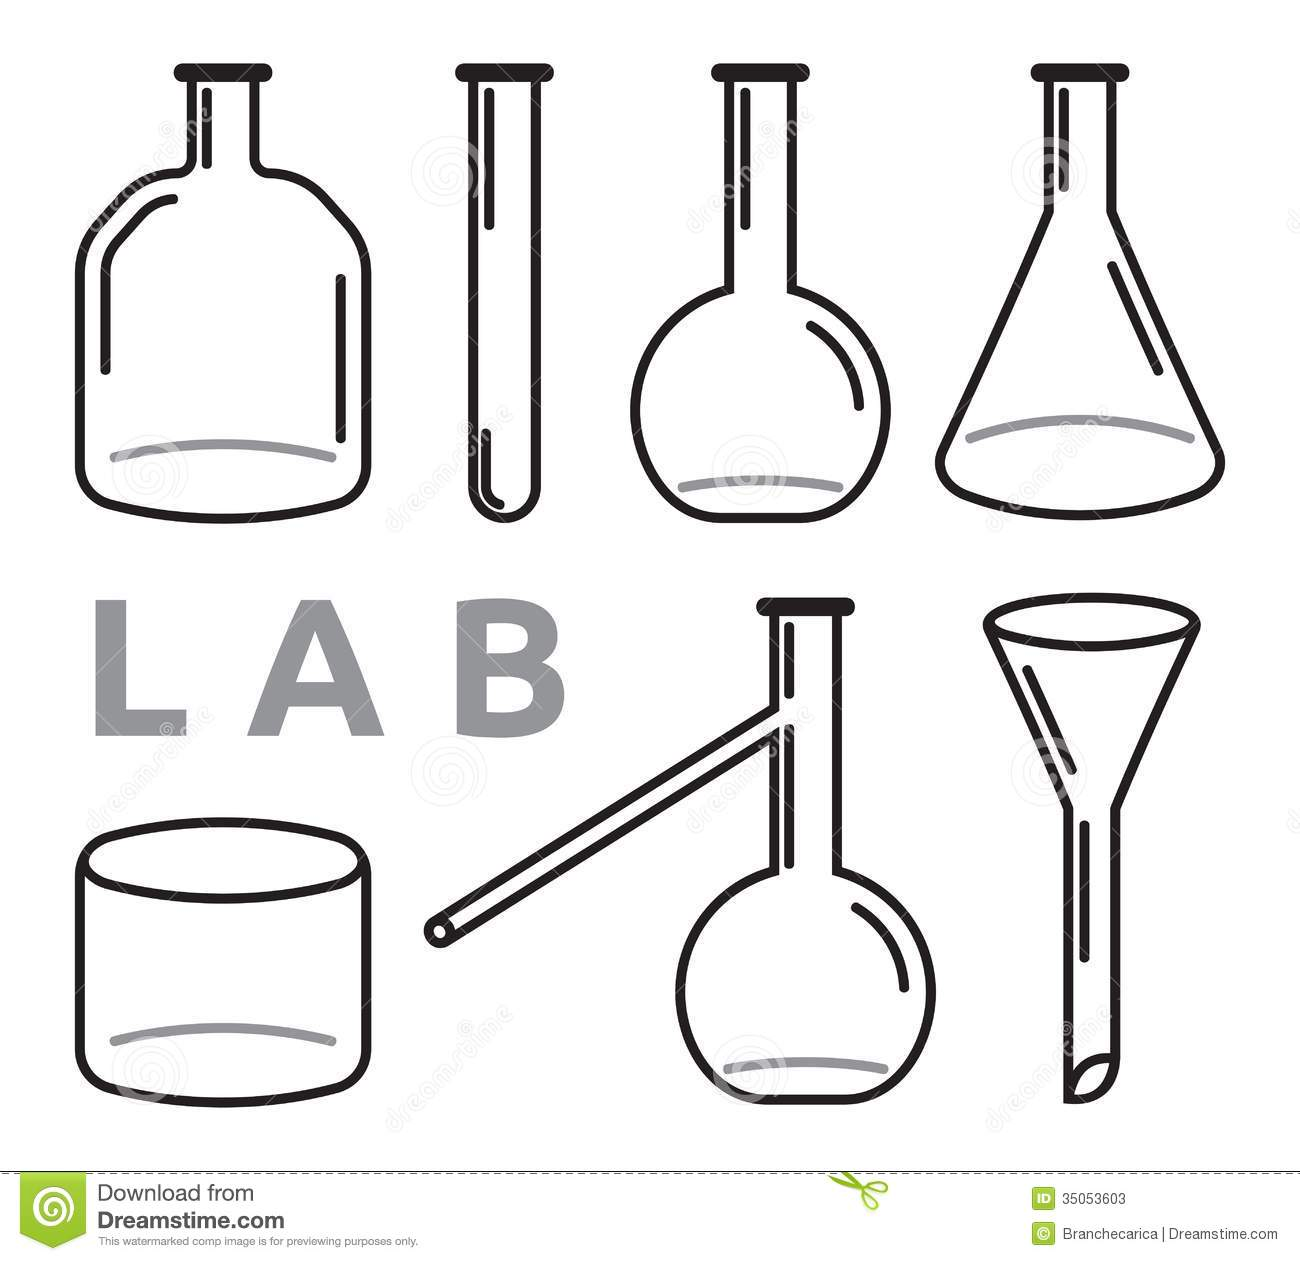 Crucible Tongs Stainless Steel as well Two Test Tubes as well Thermometer Clip Art For Math as well Stock Photography Dna Strand Question Mark Against Arranged Used As Illustrations Medical Health Image40876052 as well Erlenmeyer. on laboratory beaker